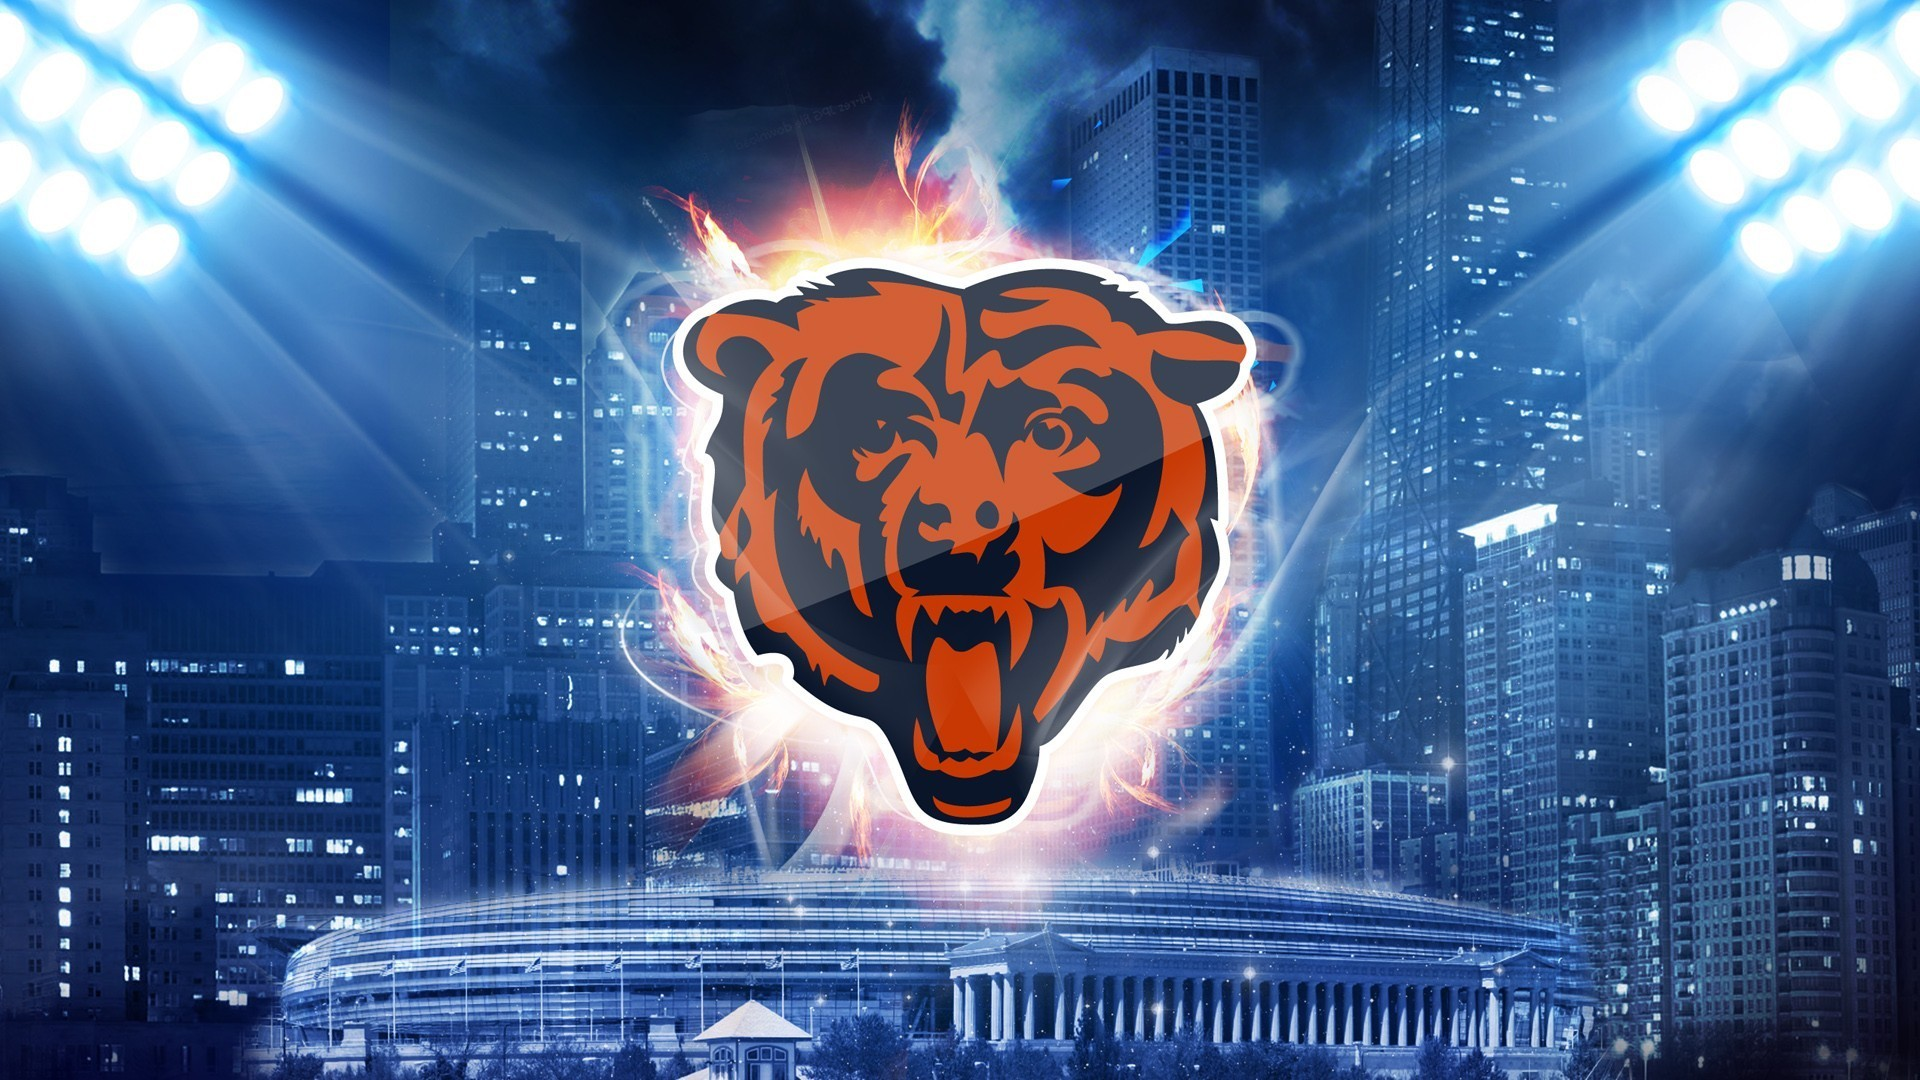 1920x1080 Chicago Bears Live Wallpaper 2017 2018 Best Cars Reviews